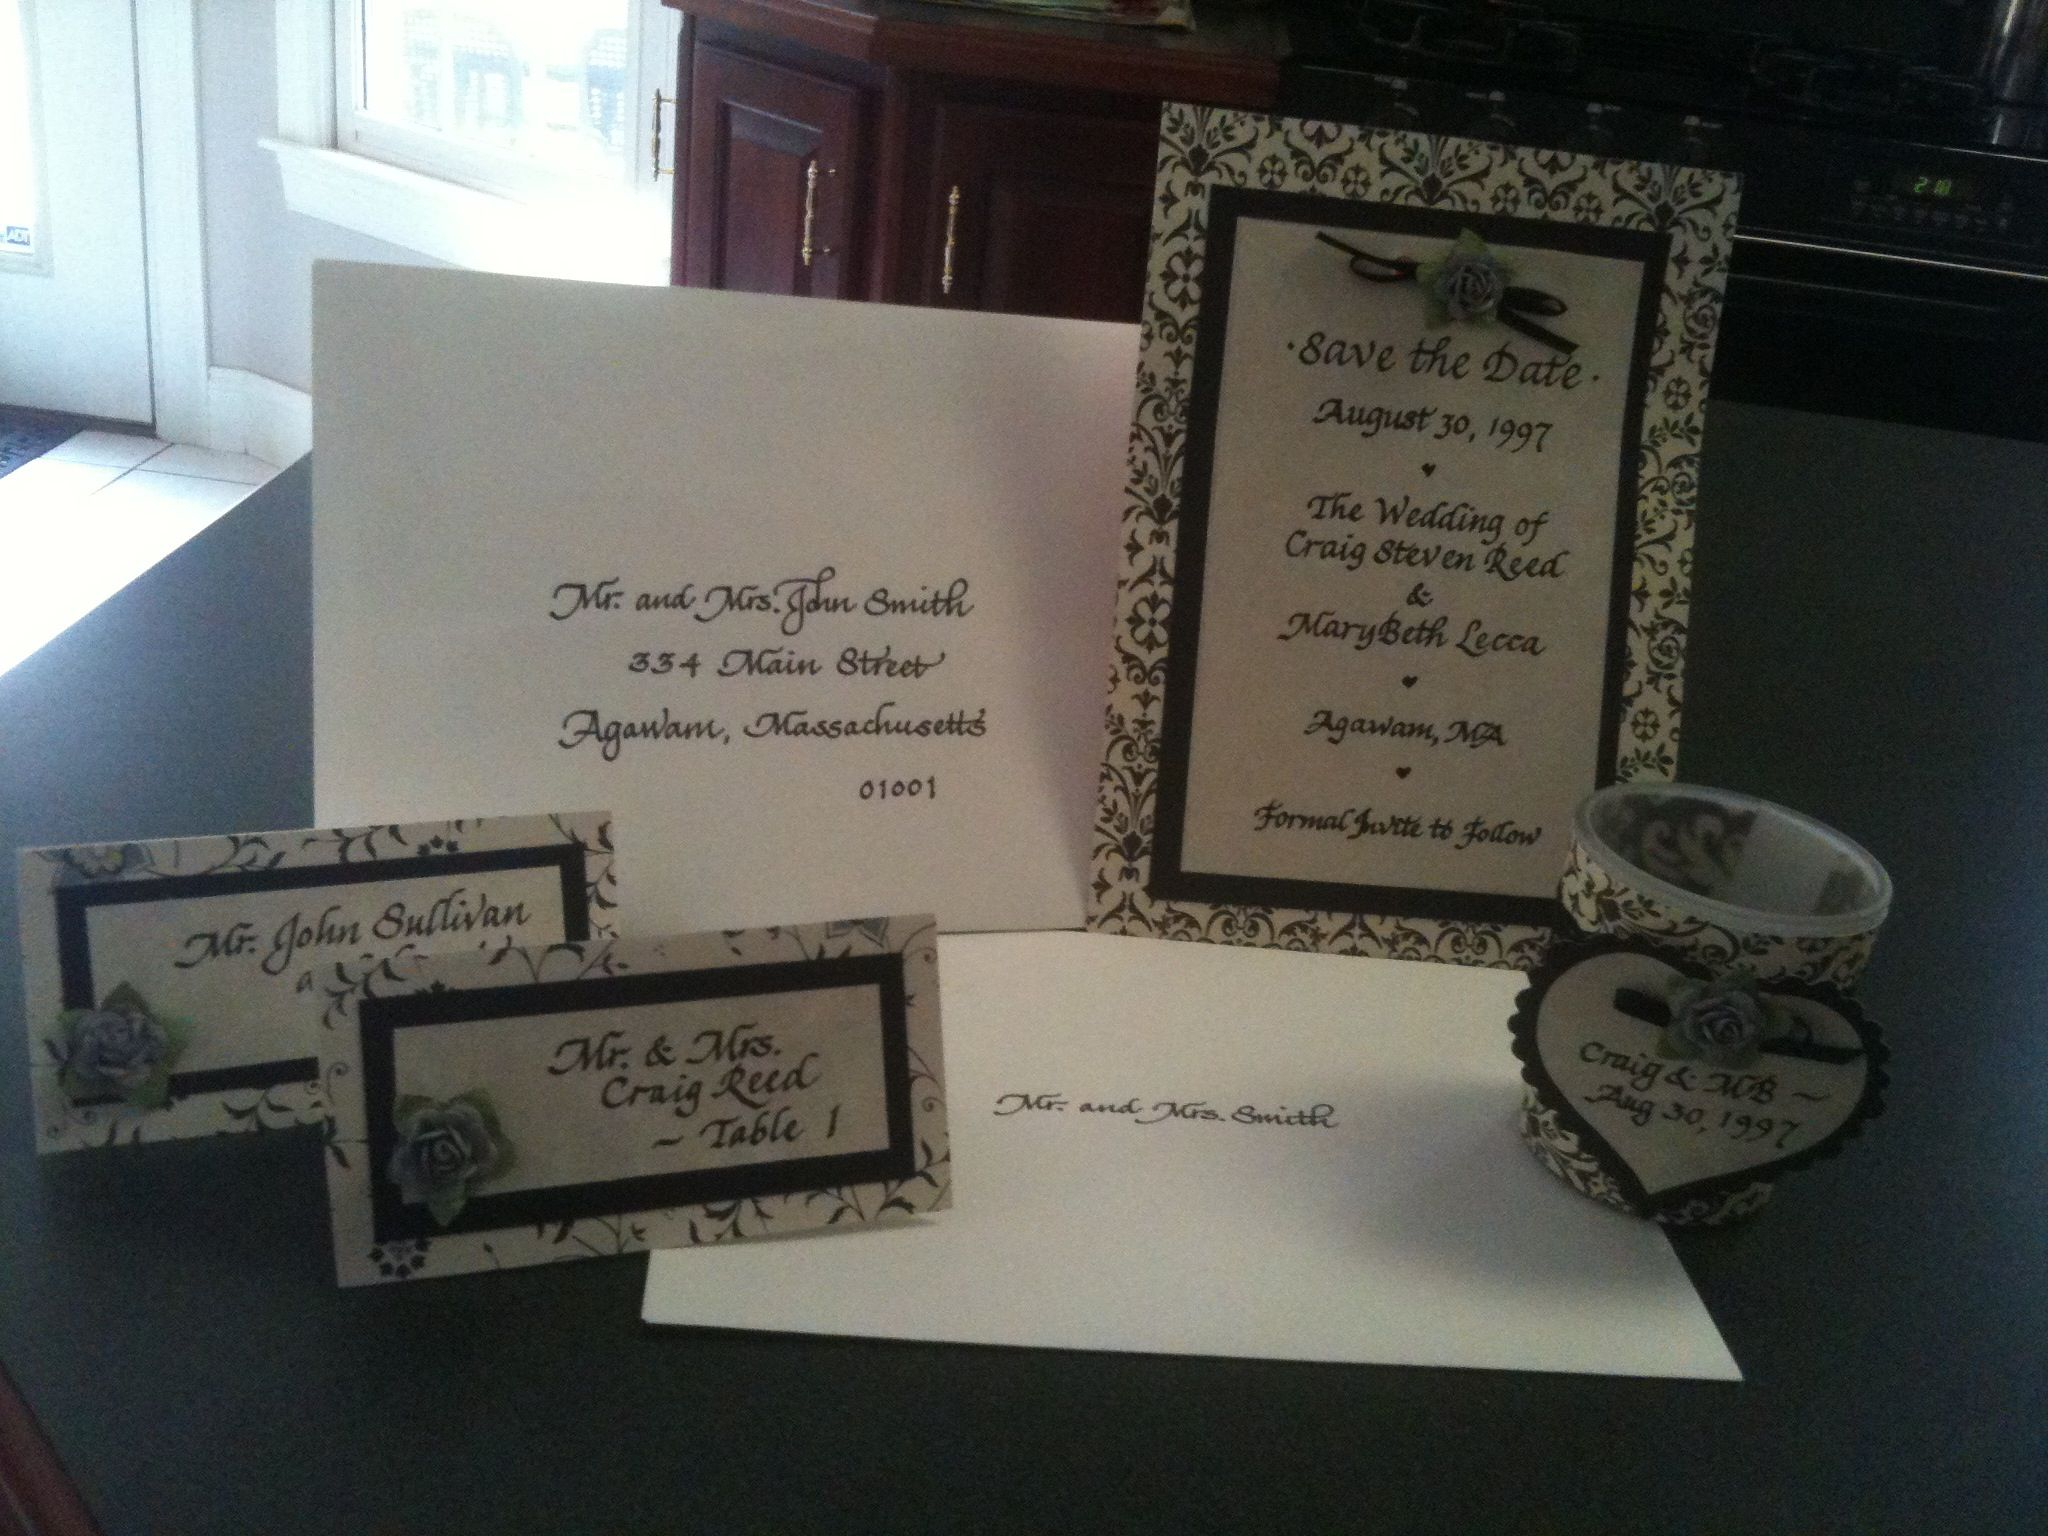 Wedding season is right around the corner. If you or anyone you know is getting married and needs invitations addressed, along with place cards, table cards, menus, seating charts, etc., please contact me at cmbreed@comcast.net.